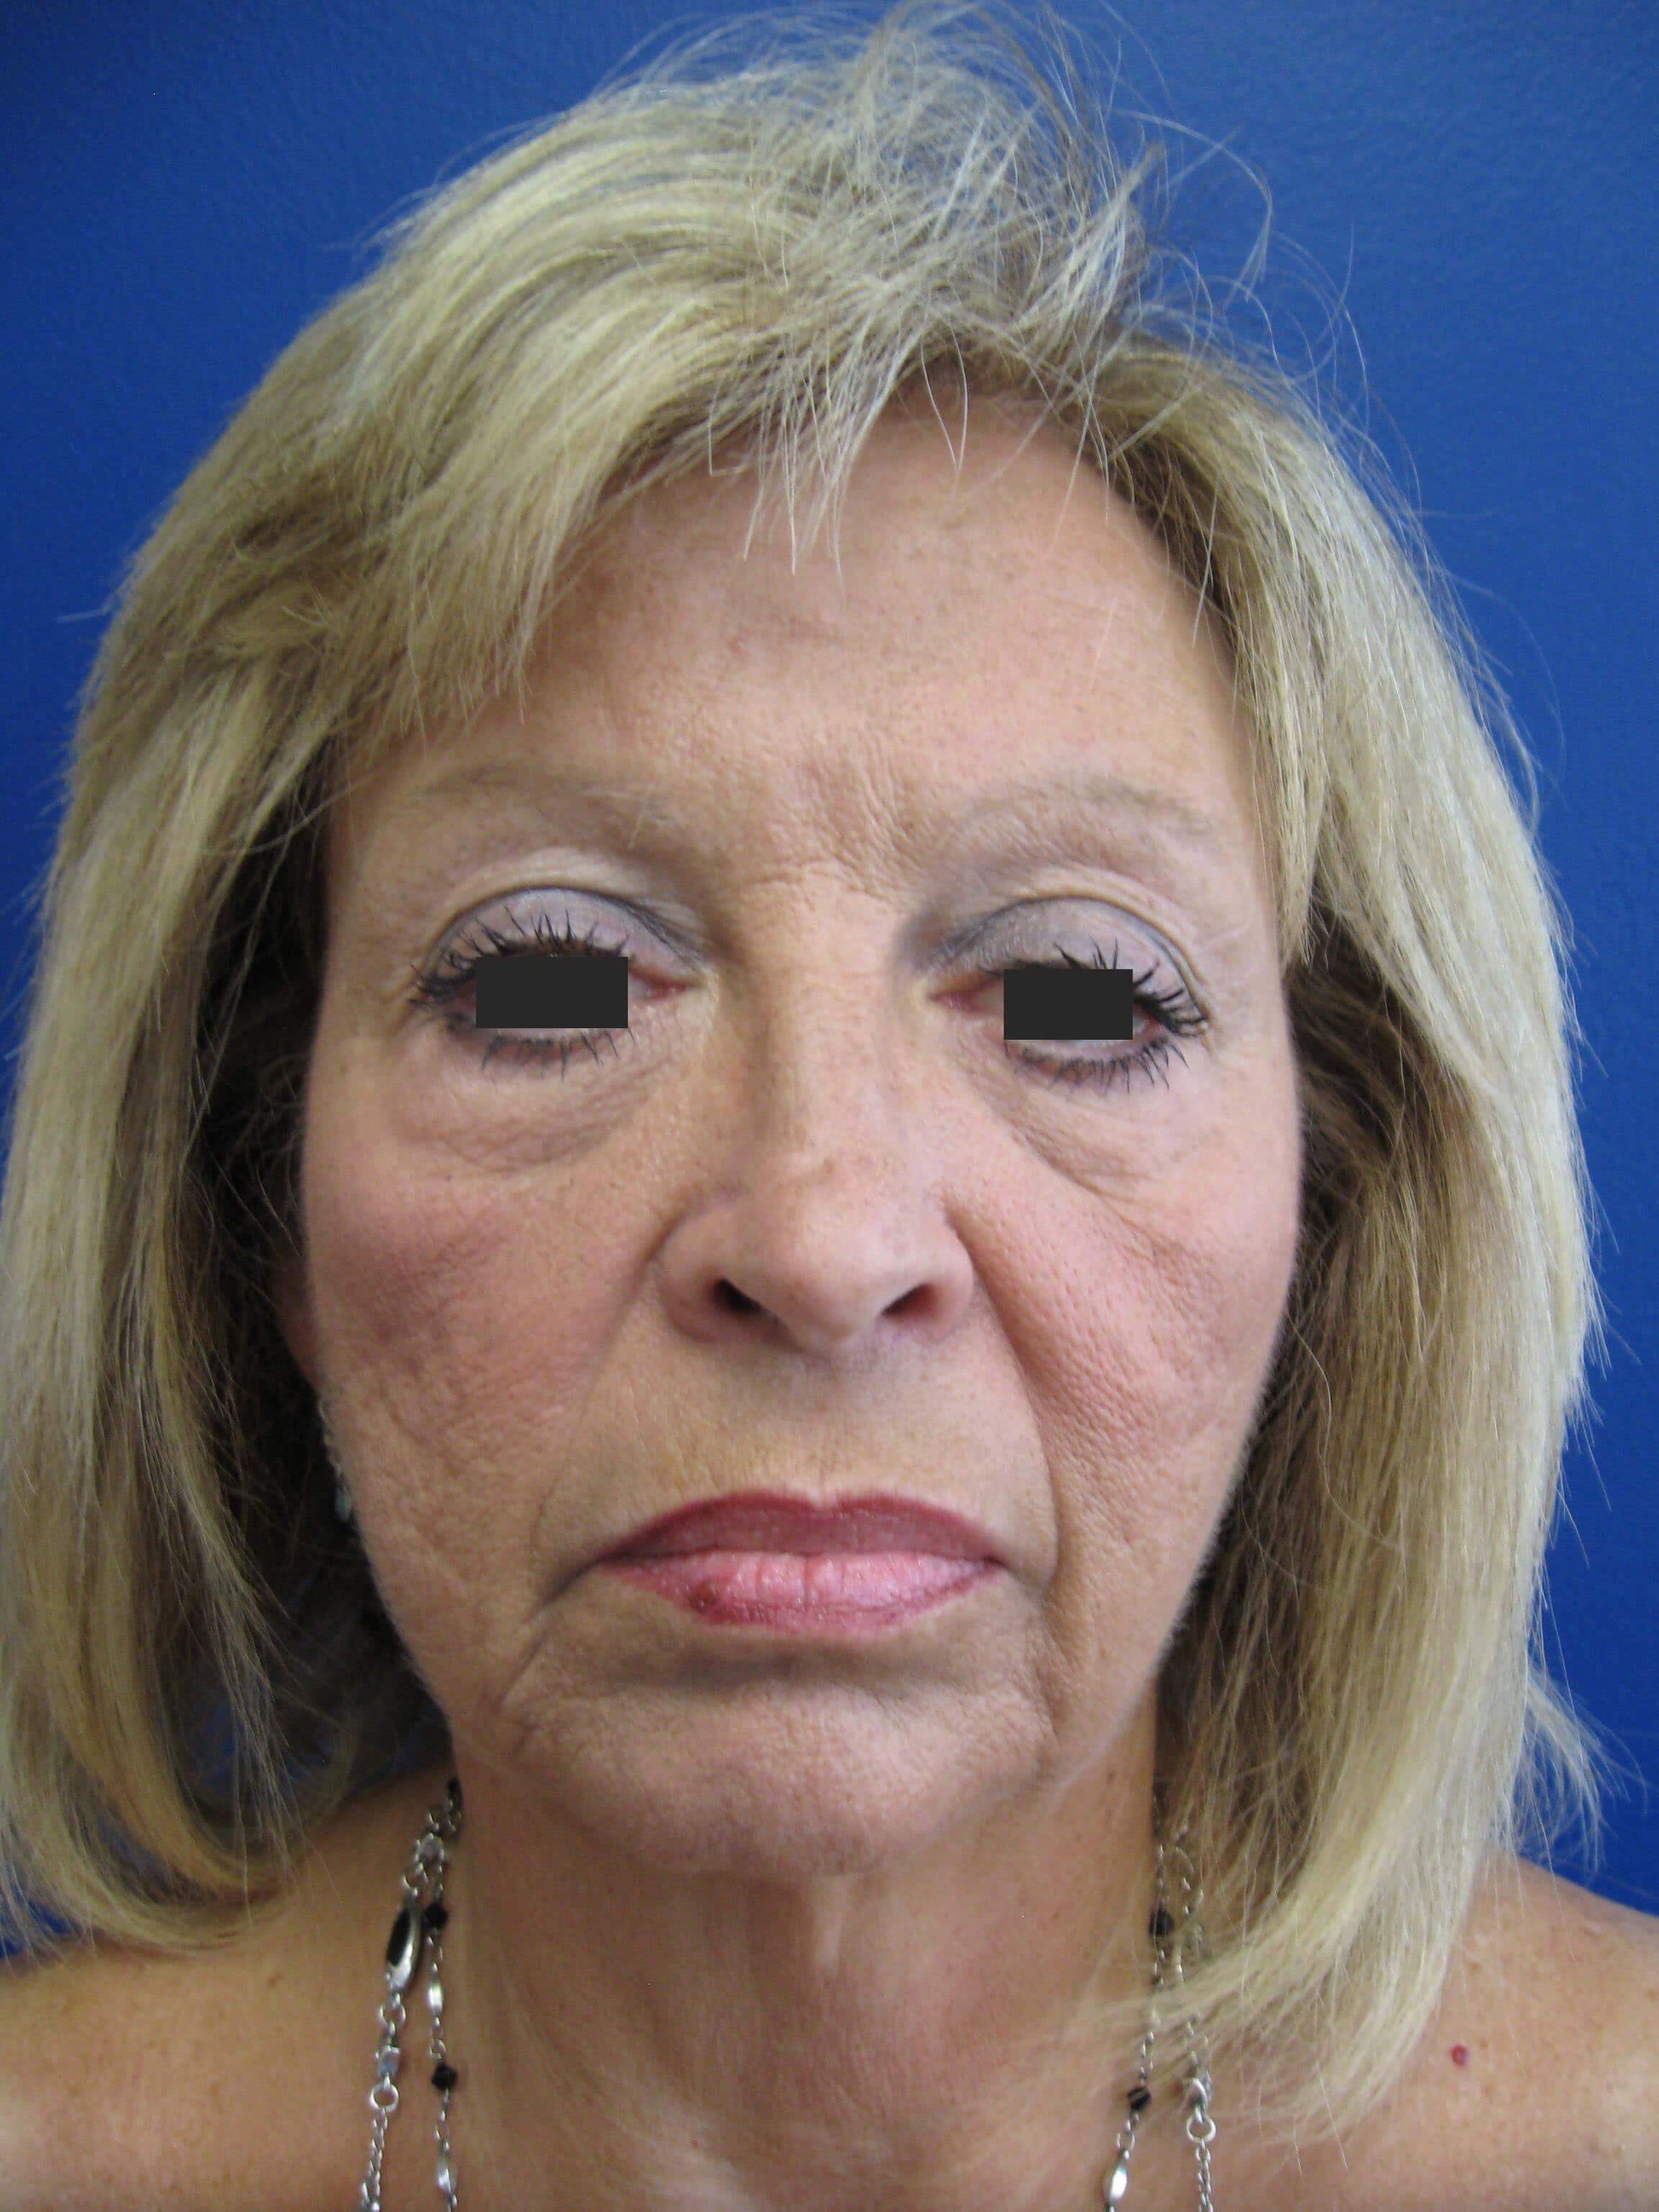 Facelift & Eyelid Surgery Before